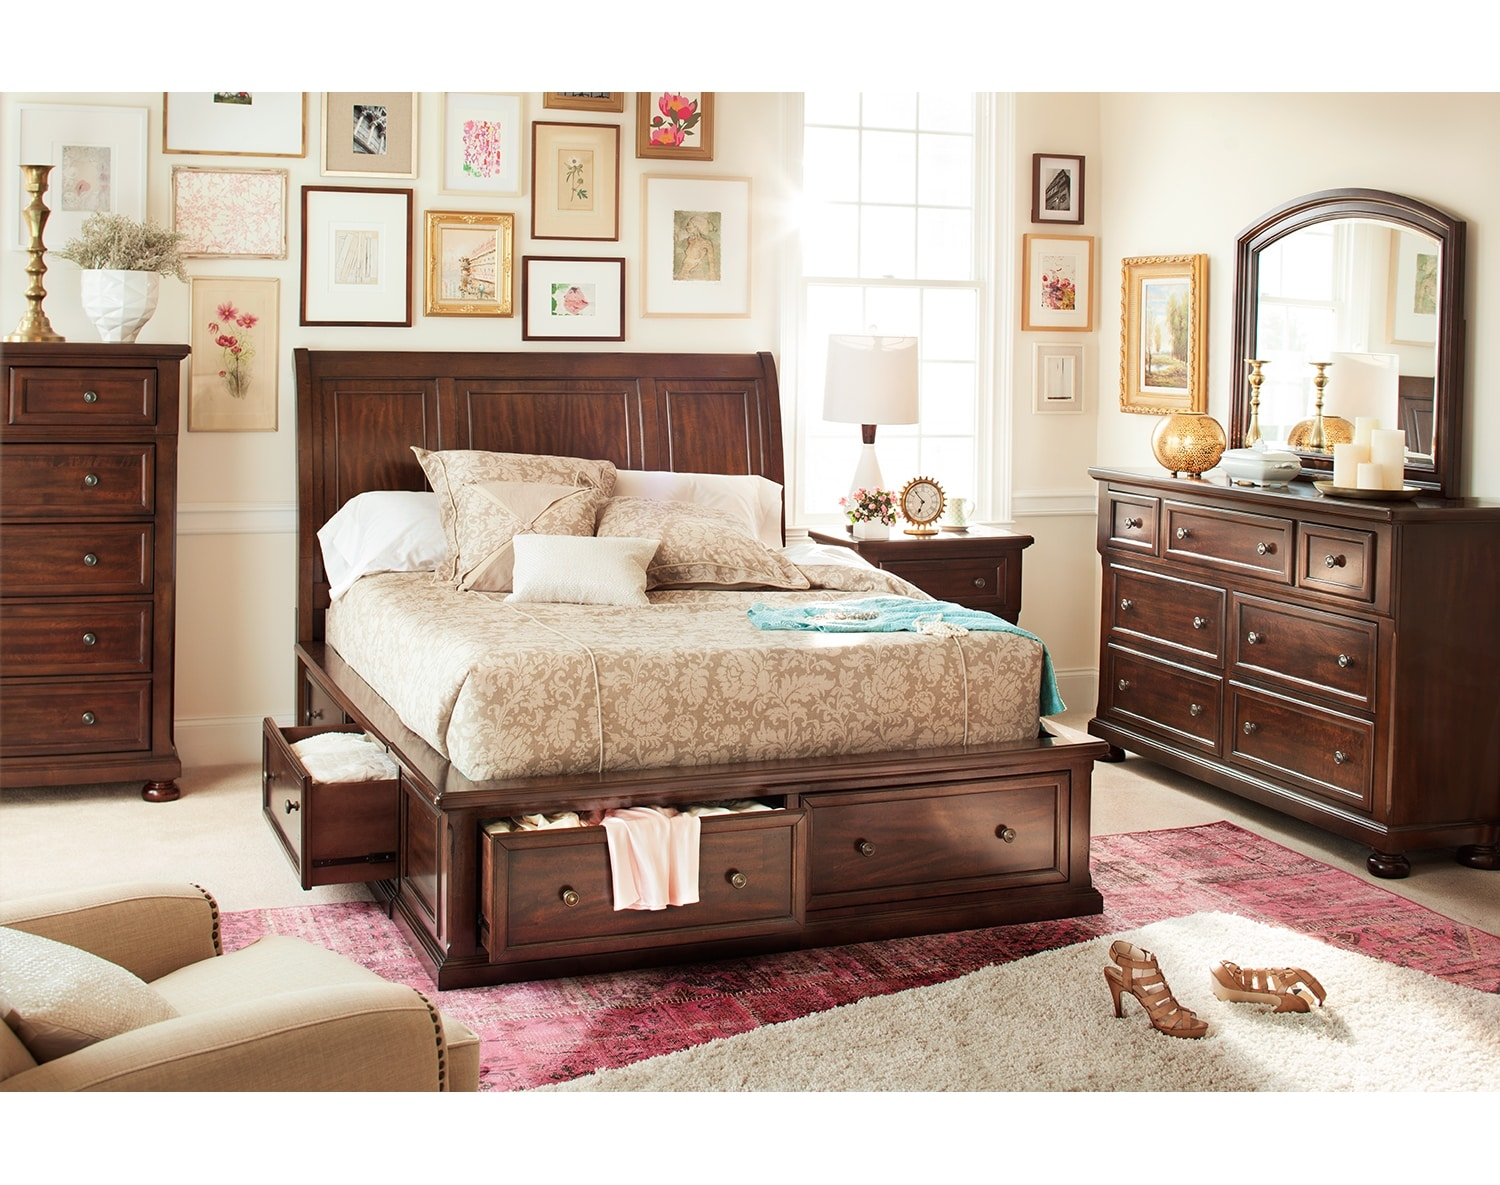 search results | value city furniture